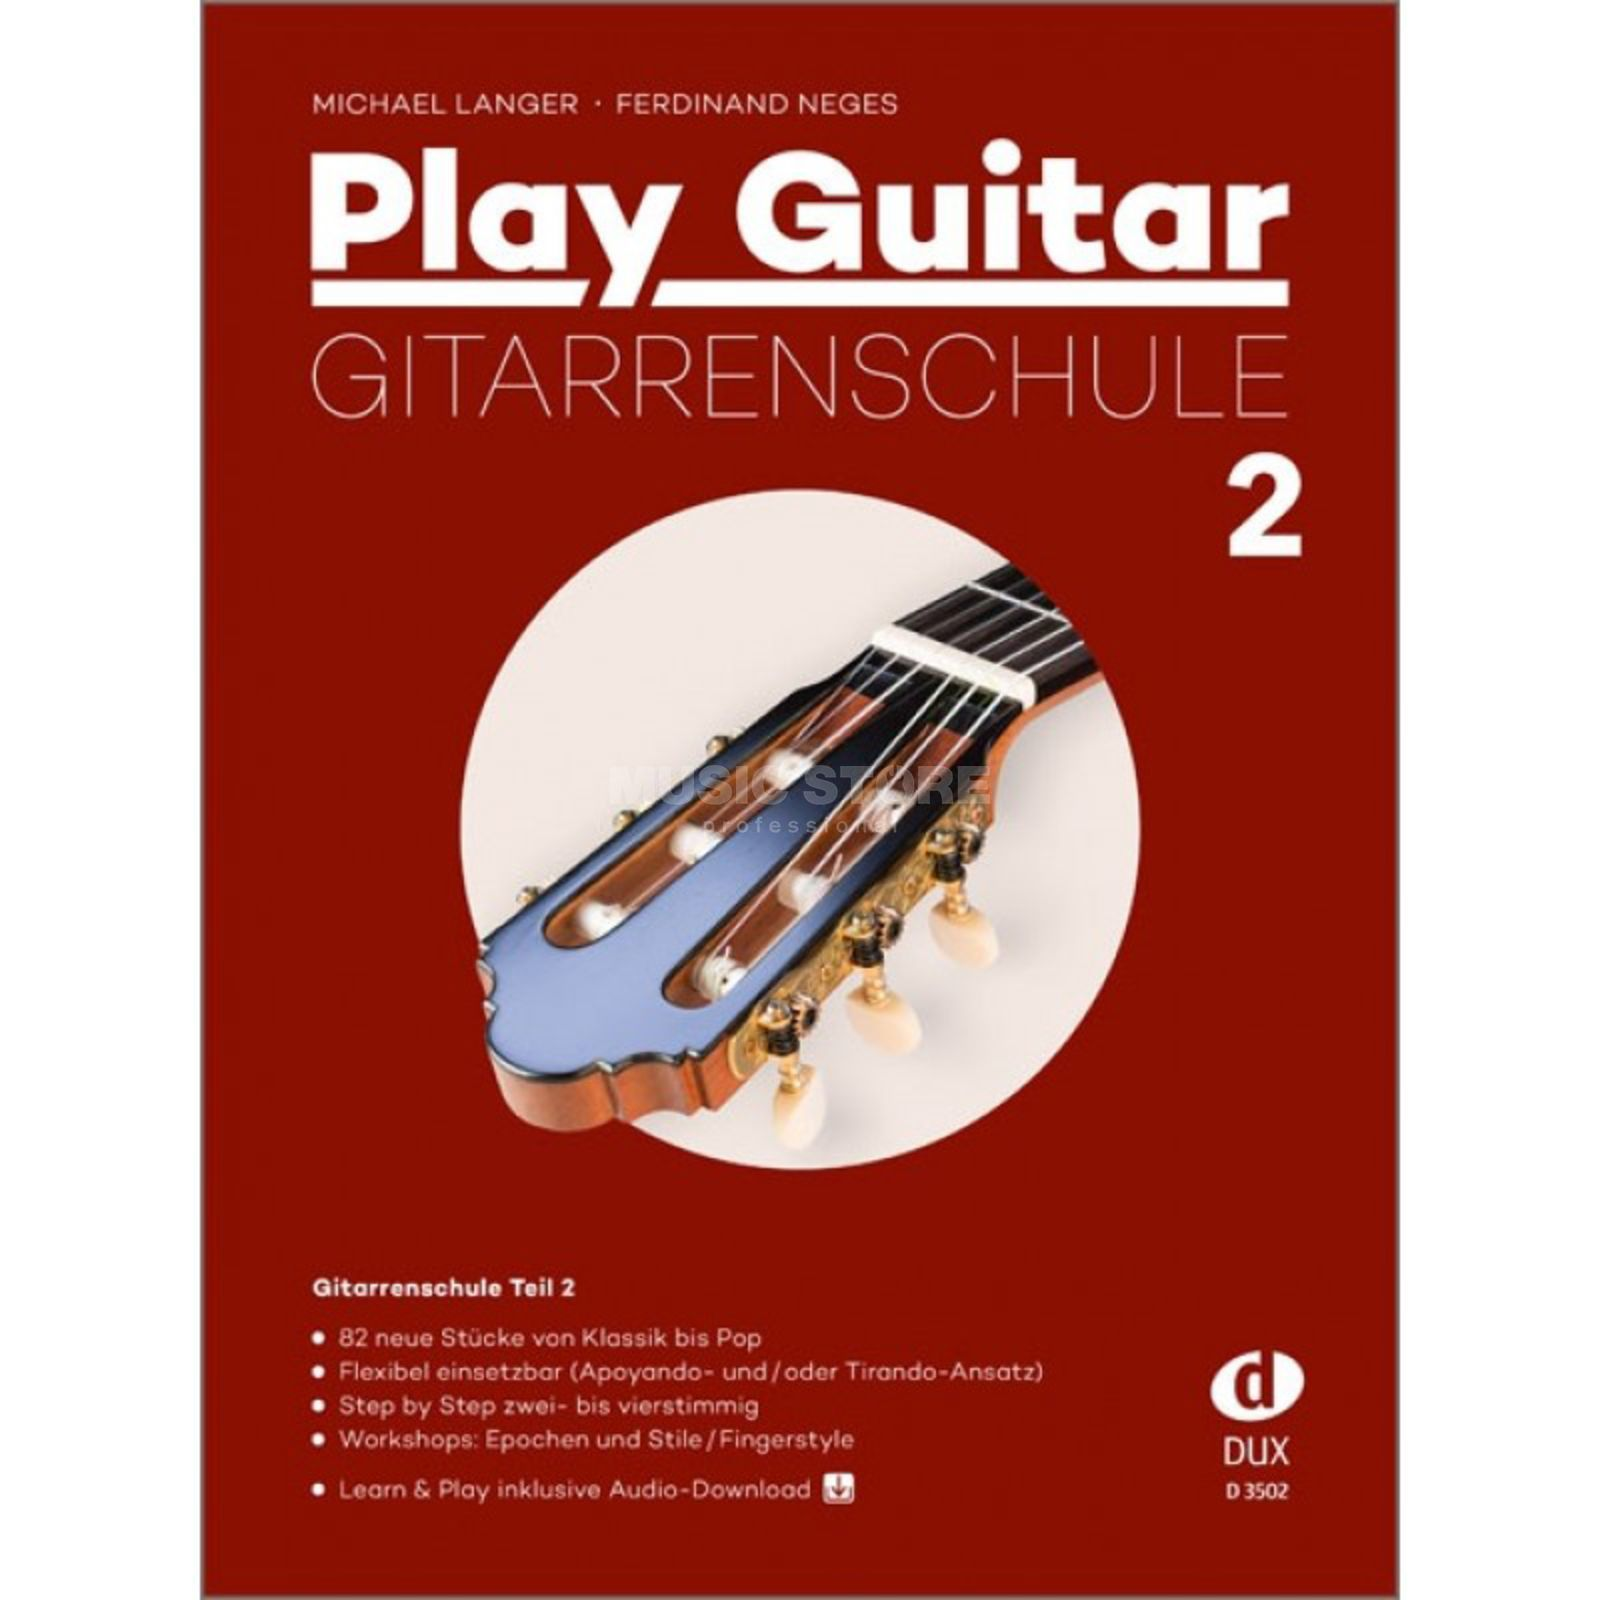 Edition Dux Play Guitar Gitarrenschule 2 - Michael Langer, Ferdinand Neges Product Image